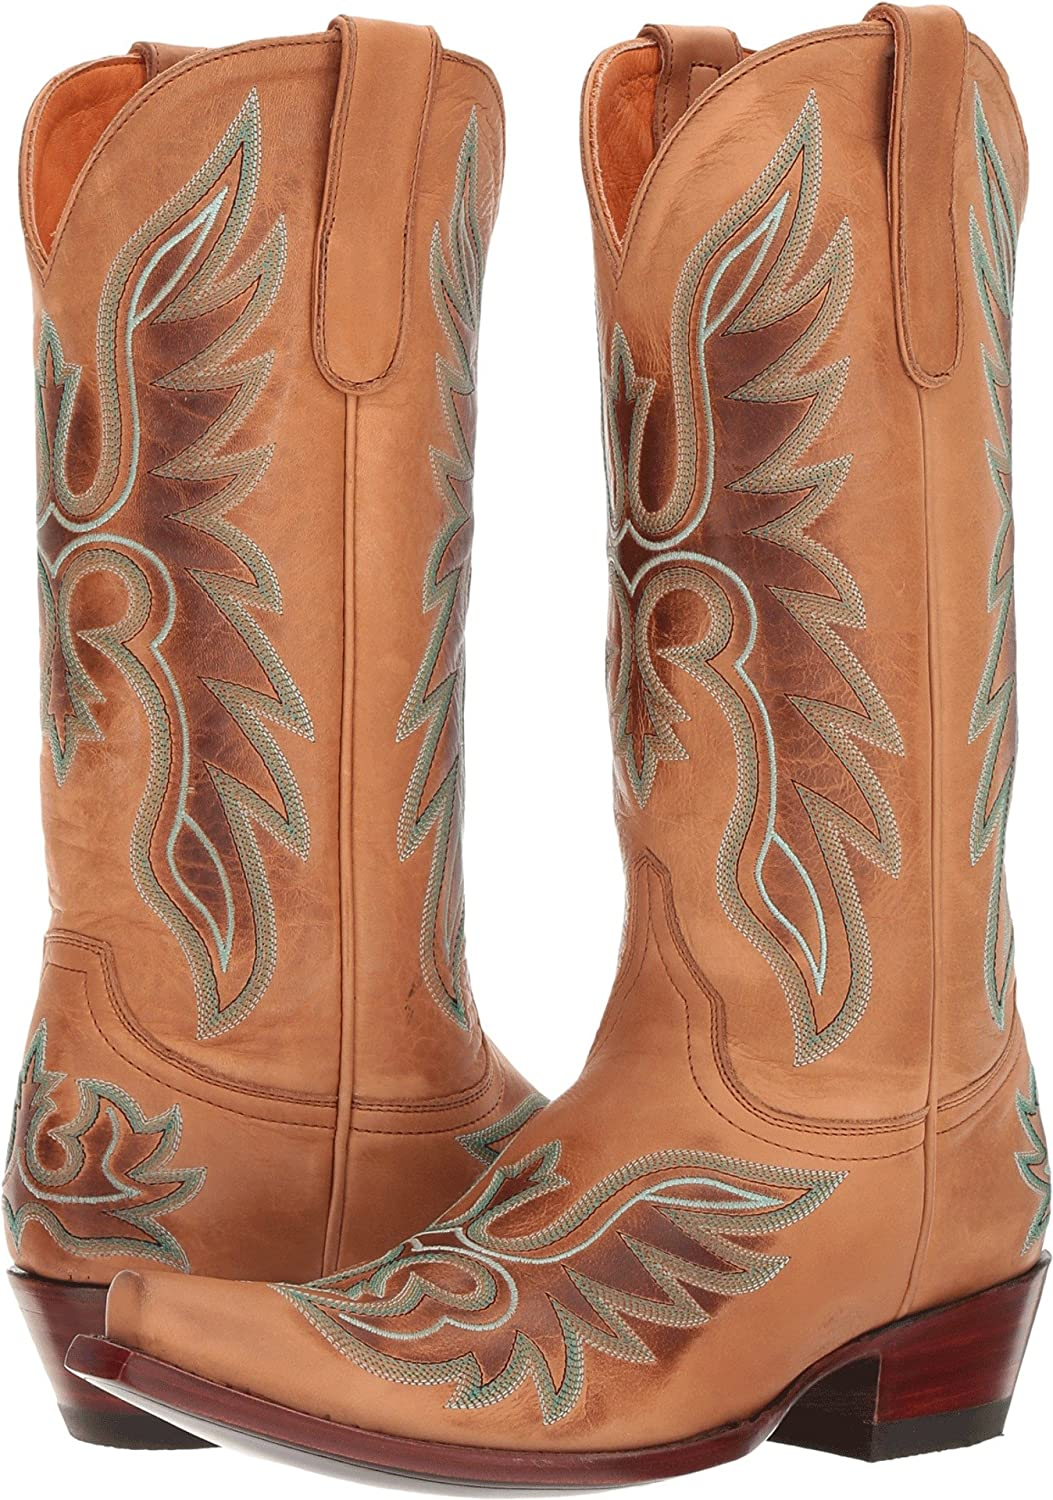 Old Gringo Womens Brave B06XD8SVCW 5.5 B(M) US|Taupe/White